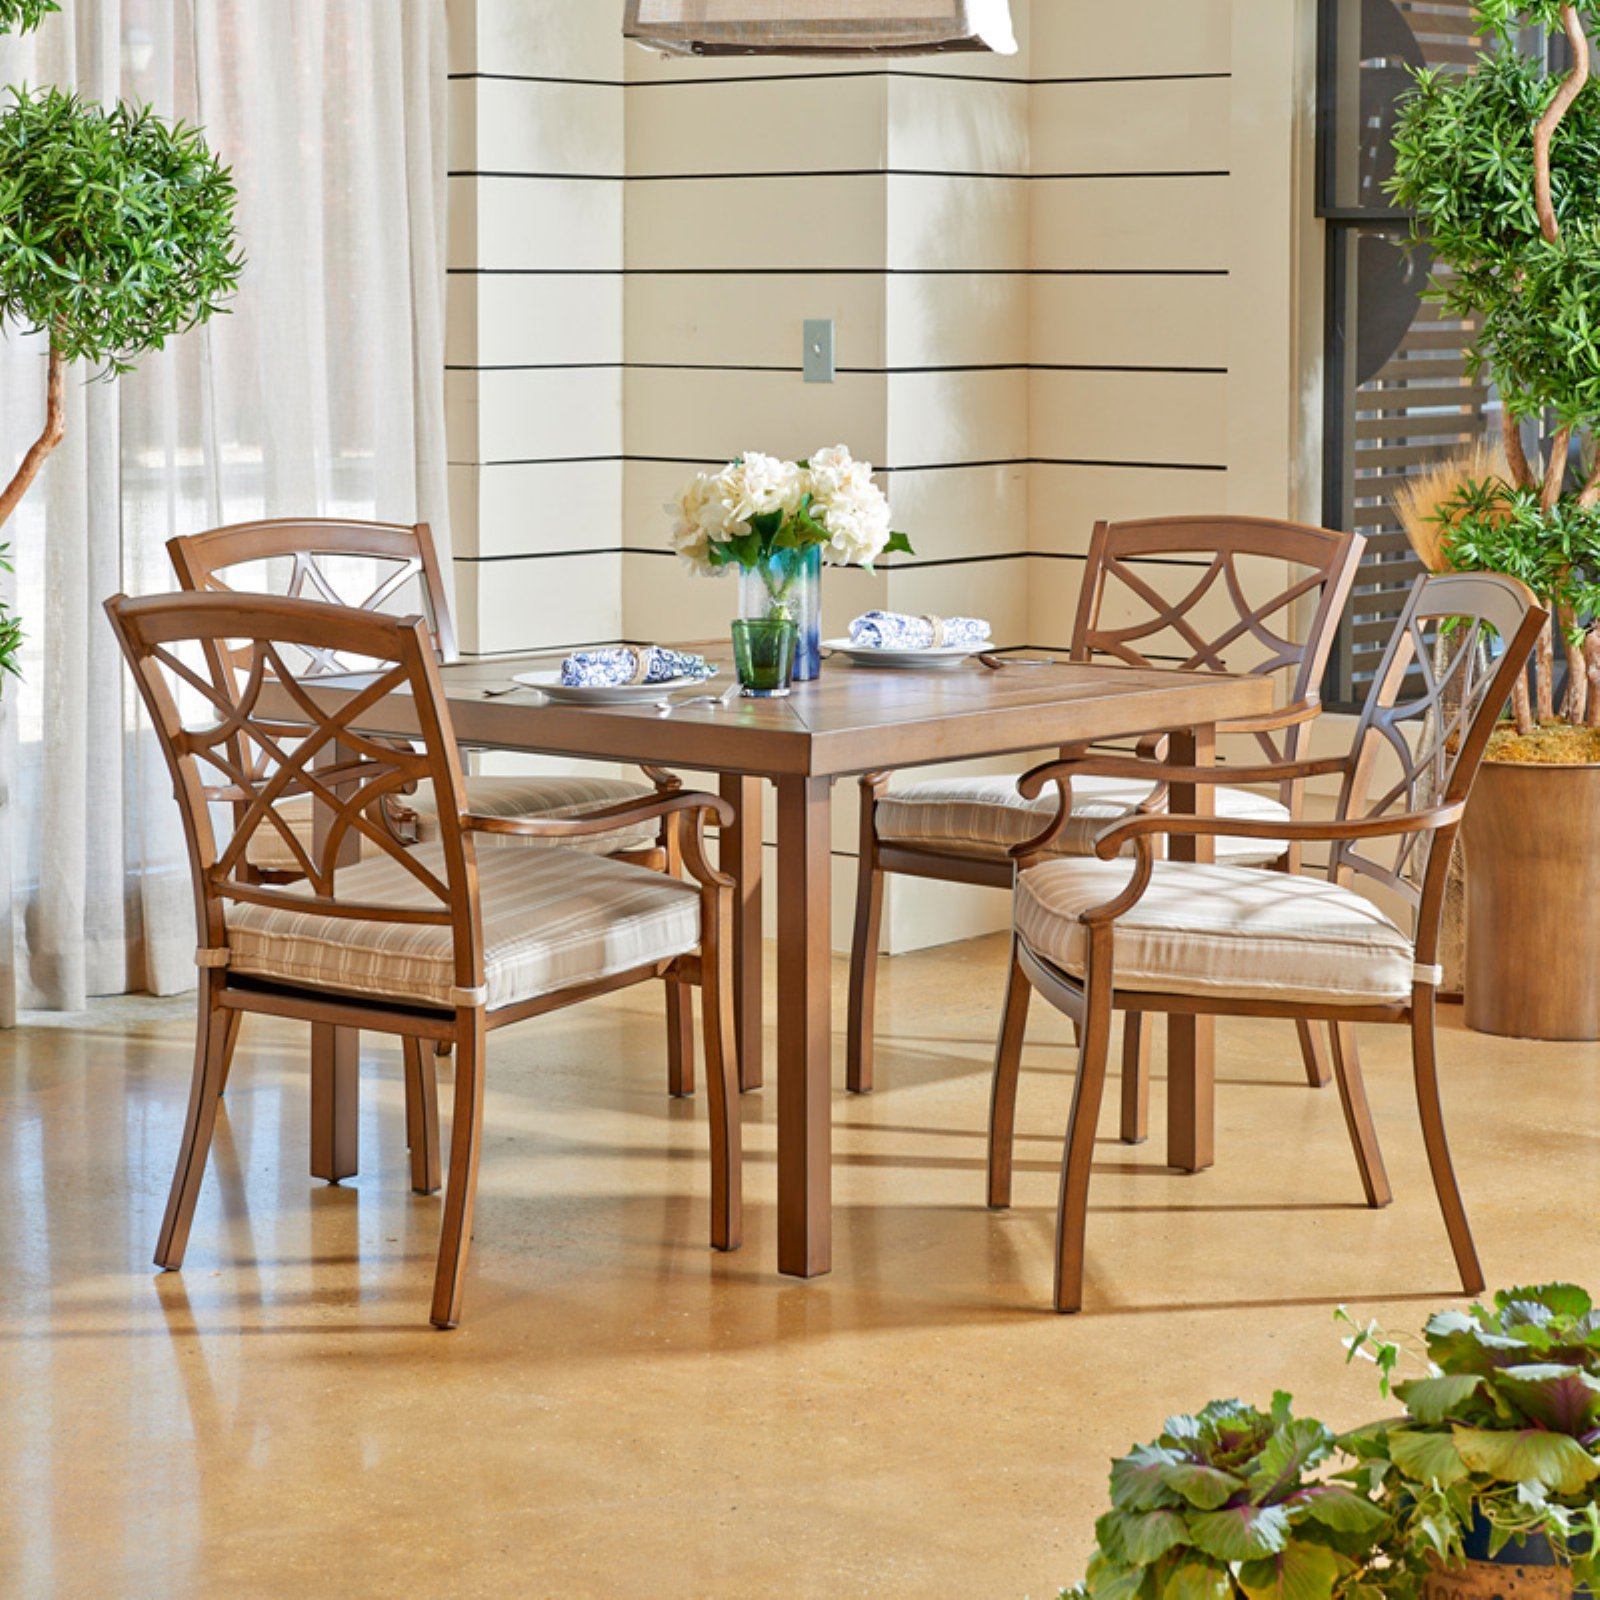 Trisha Yearwood Outdoor 42 in. Dining Table with 4 Dining...